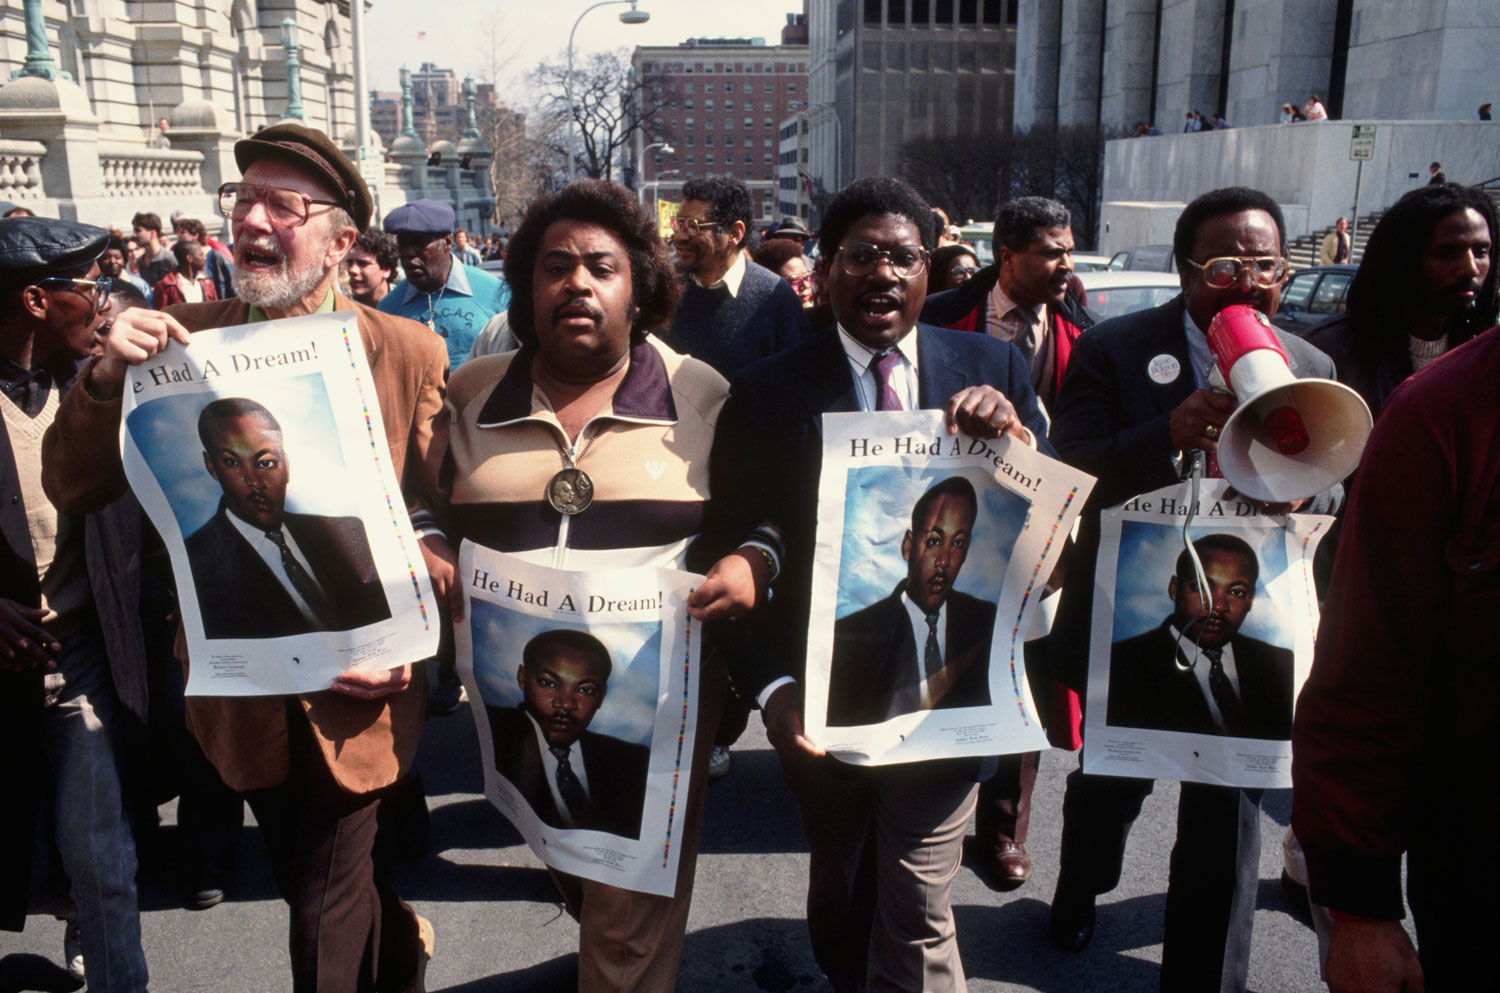 From left: Pete Seeger, Al Sharpton and other civil rights activists lead a demonstration in protest of the Tawana Brawley incident, in Albany, N.Y., in March 1988.